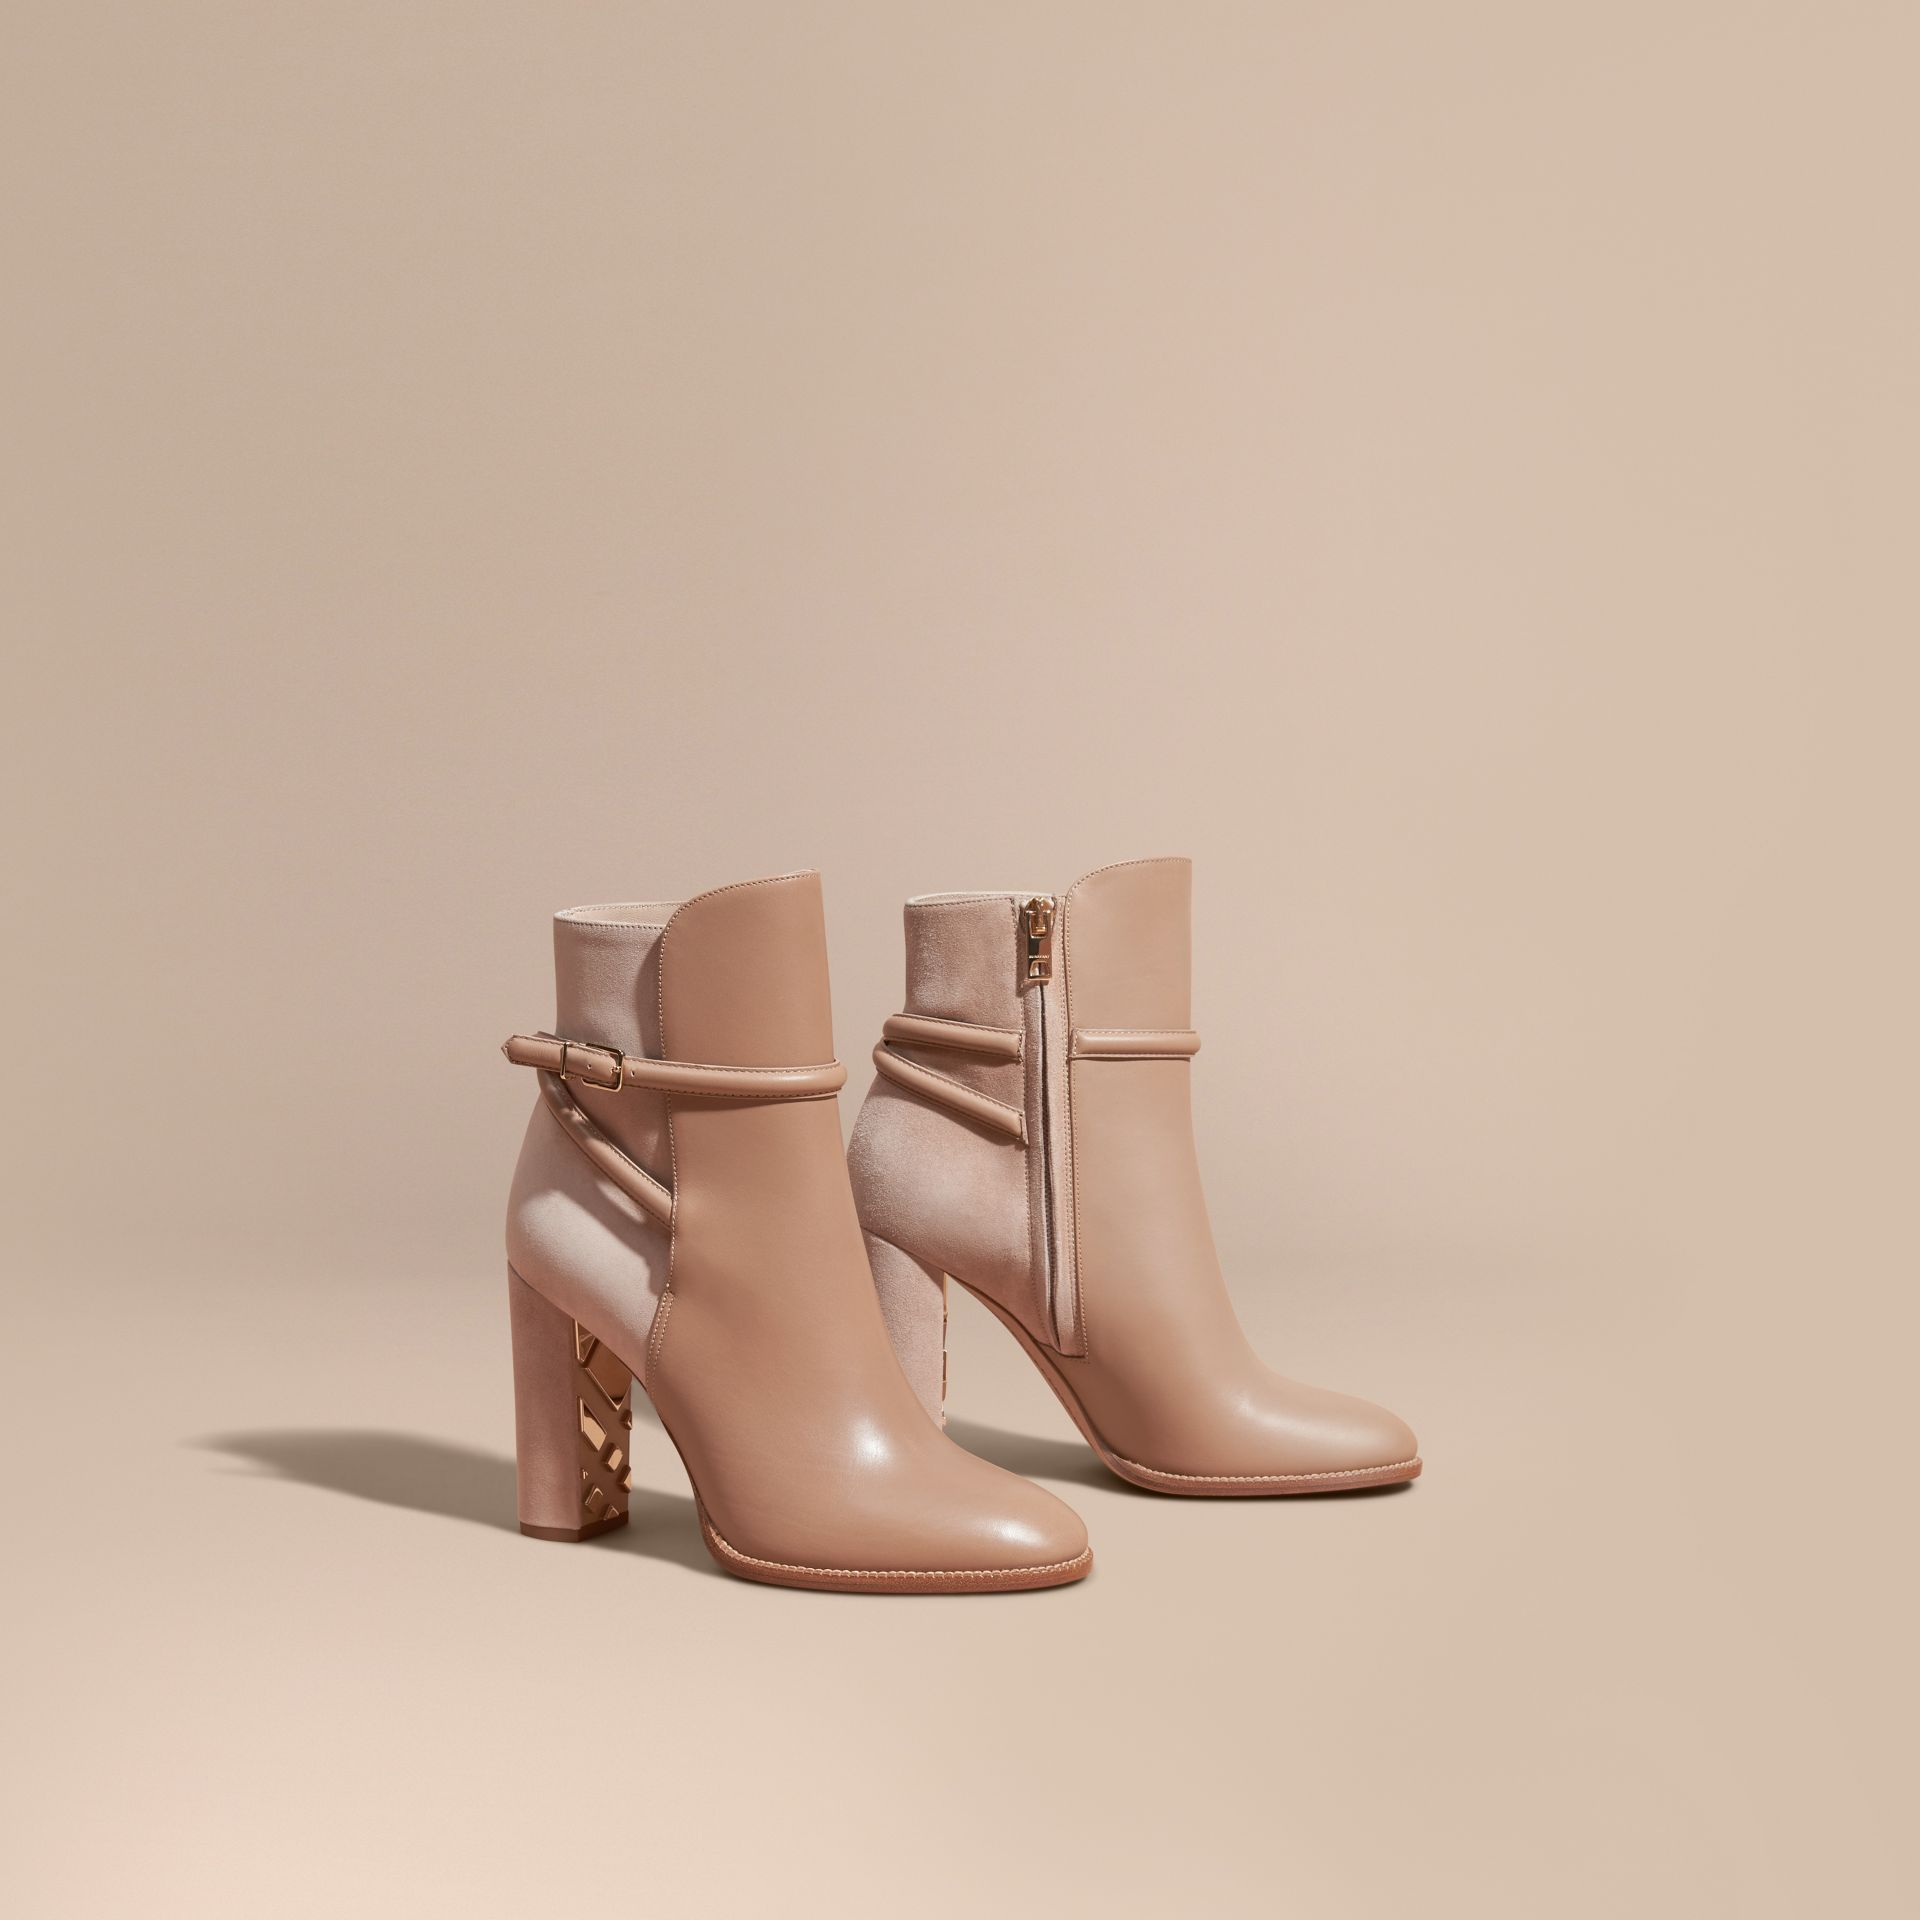 Light nude Strap Detail Leather and Suede Ankle Boots Light Nude - gallery image 1